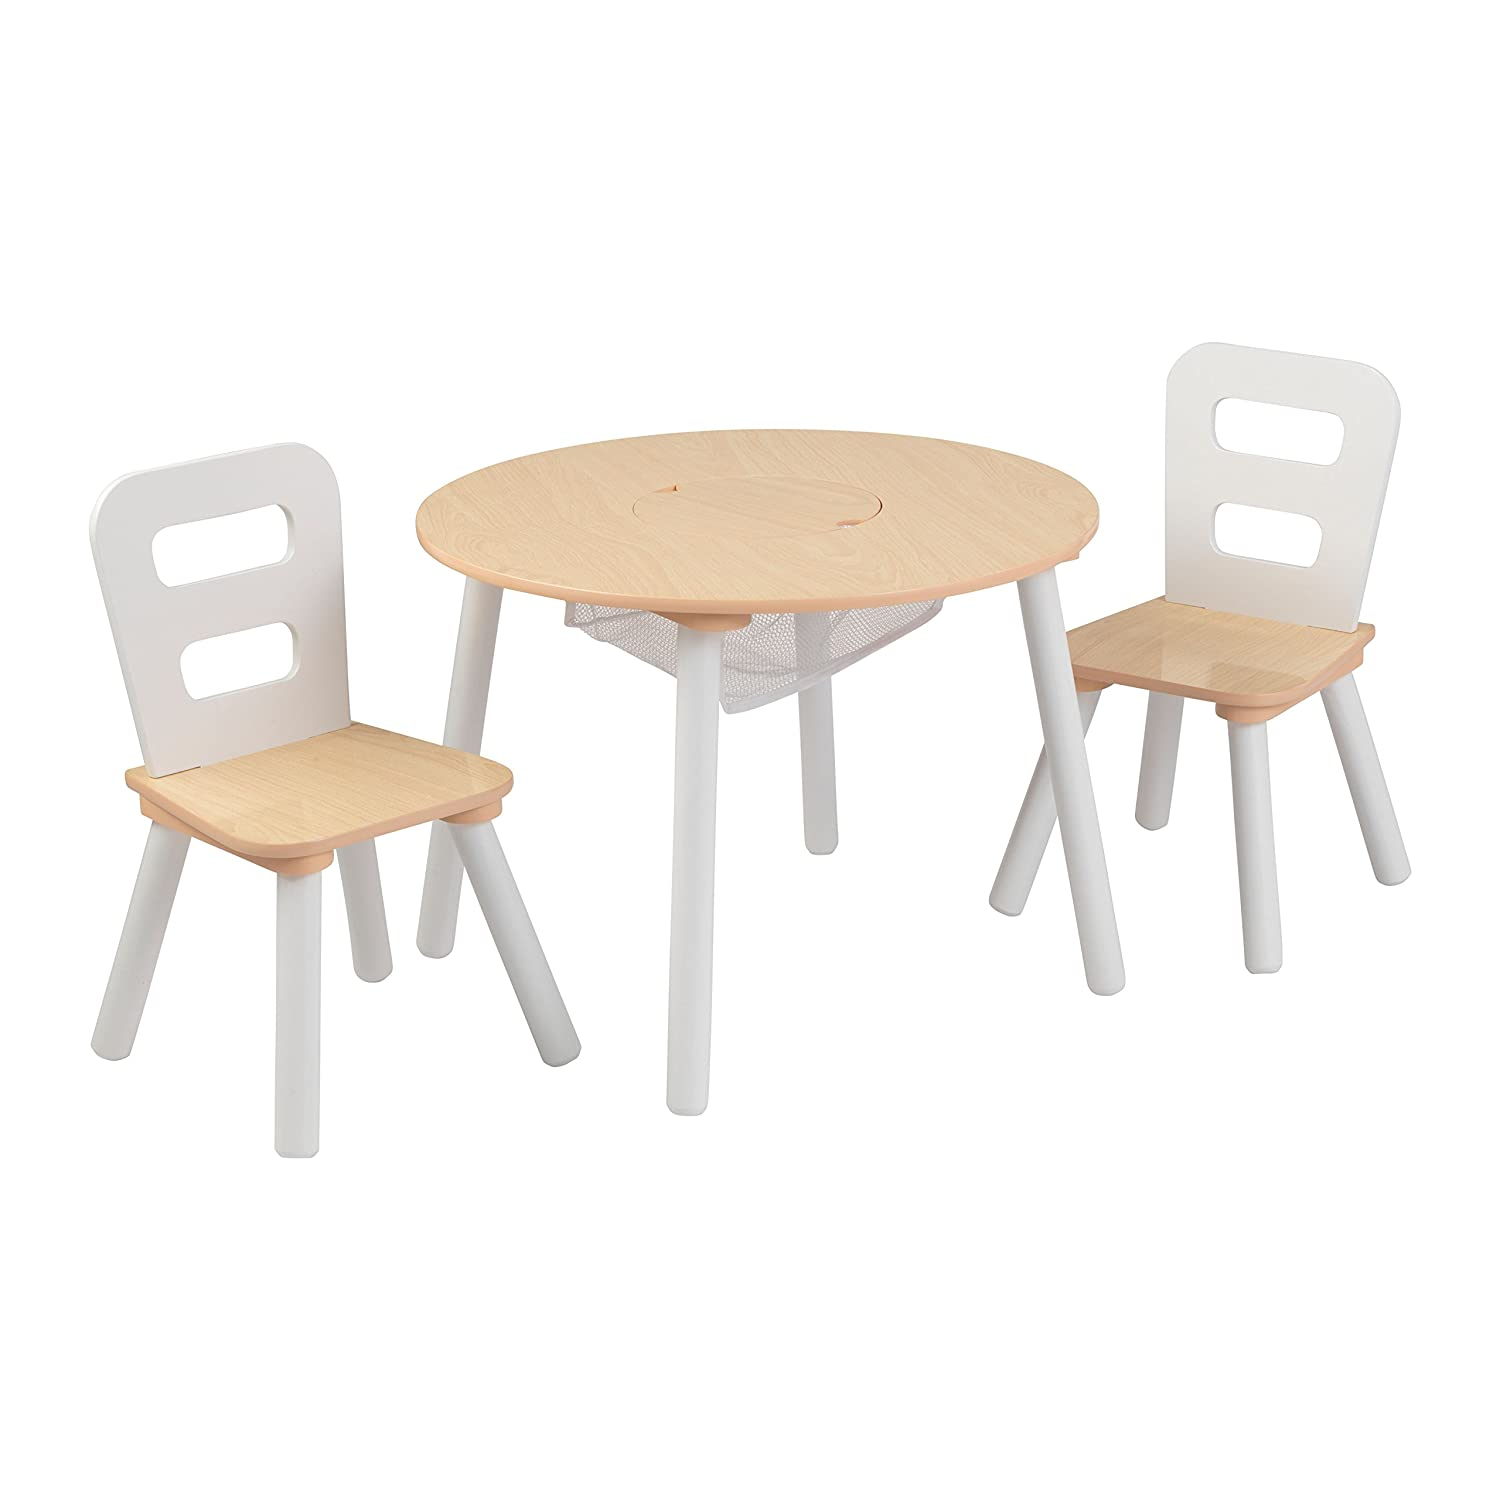 Amazon KidKraft Round Table and 2 Chair Set White Natural